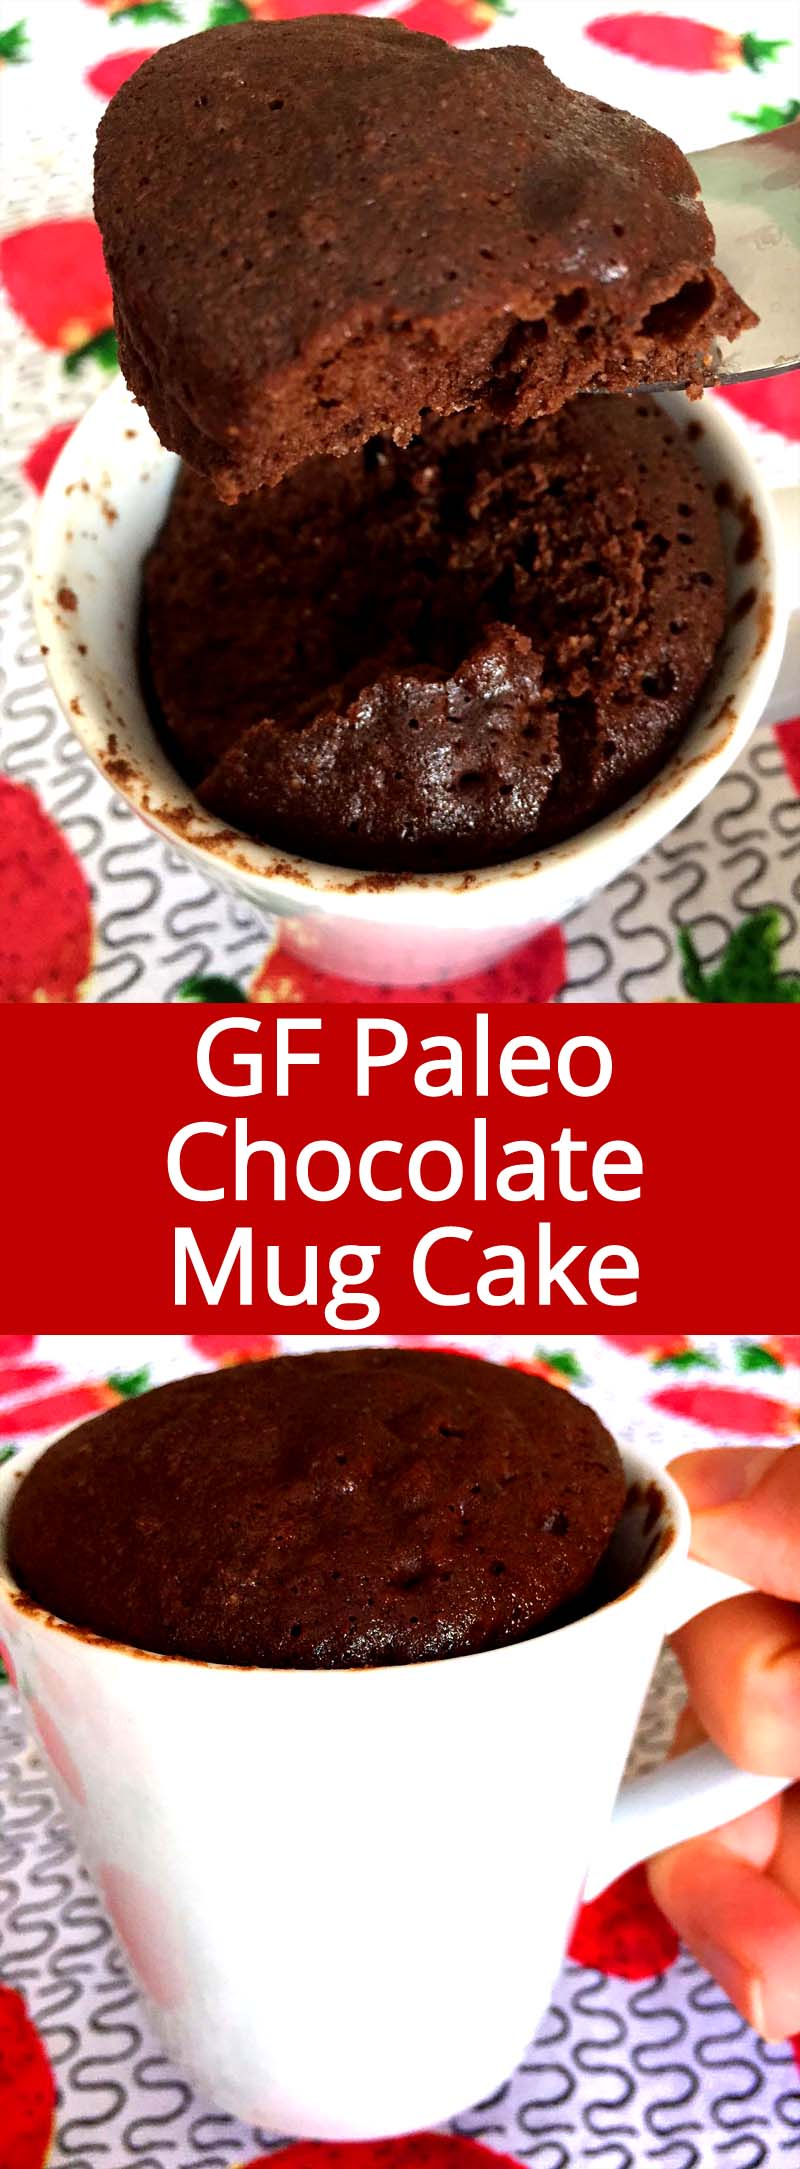 Healthy Chocolate Mug Cake Recipe Gluten Free Paleo